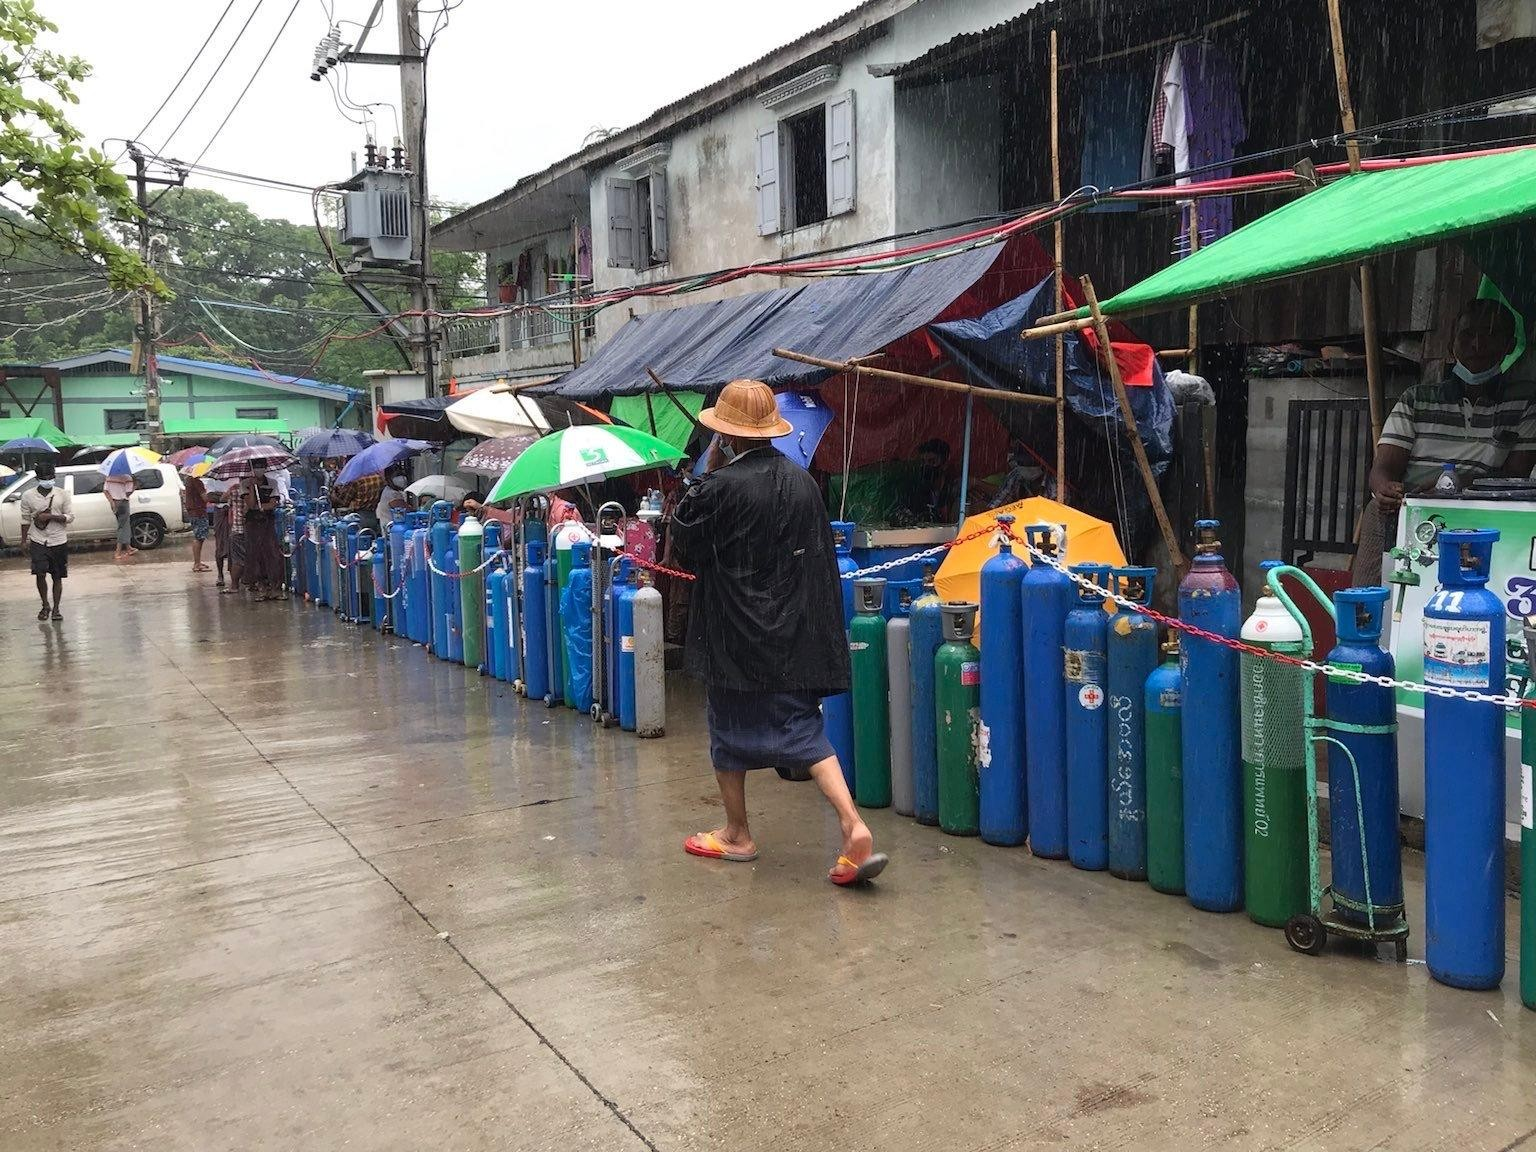 People queue in the rain for oxygen in front of the Nwe Aye Mosque in Yangon's Dawbon Township on July 12. (Photo: Myanmar Now)